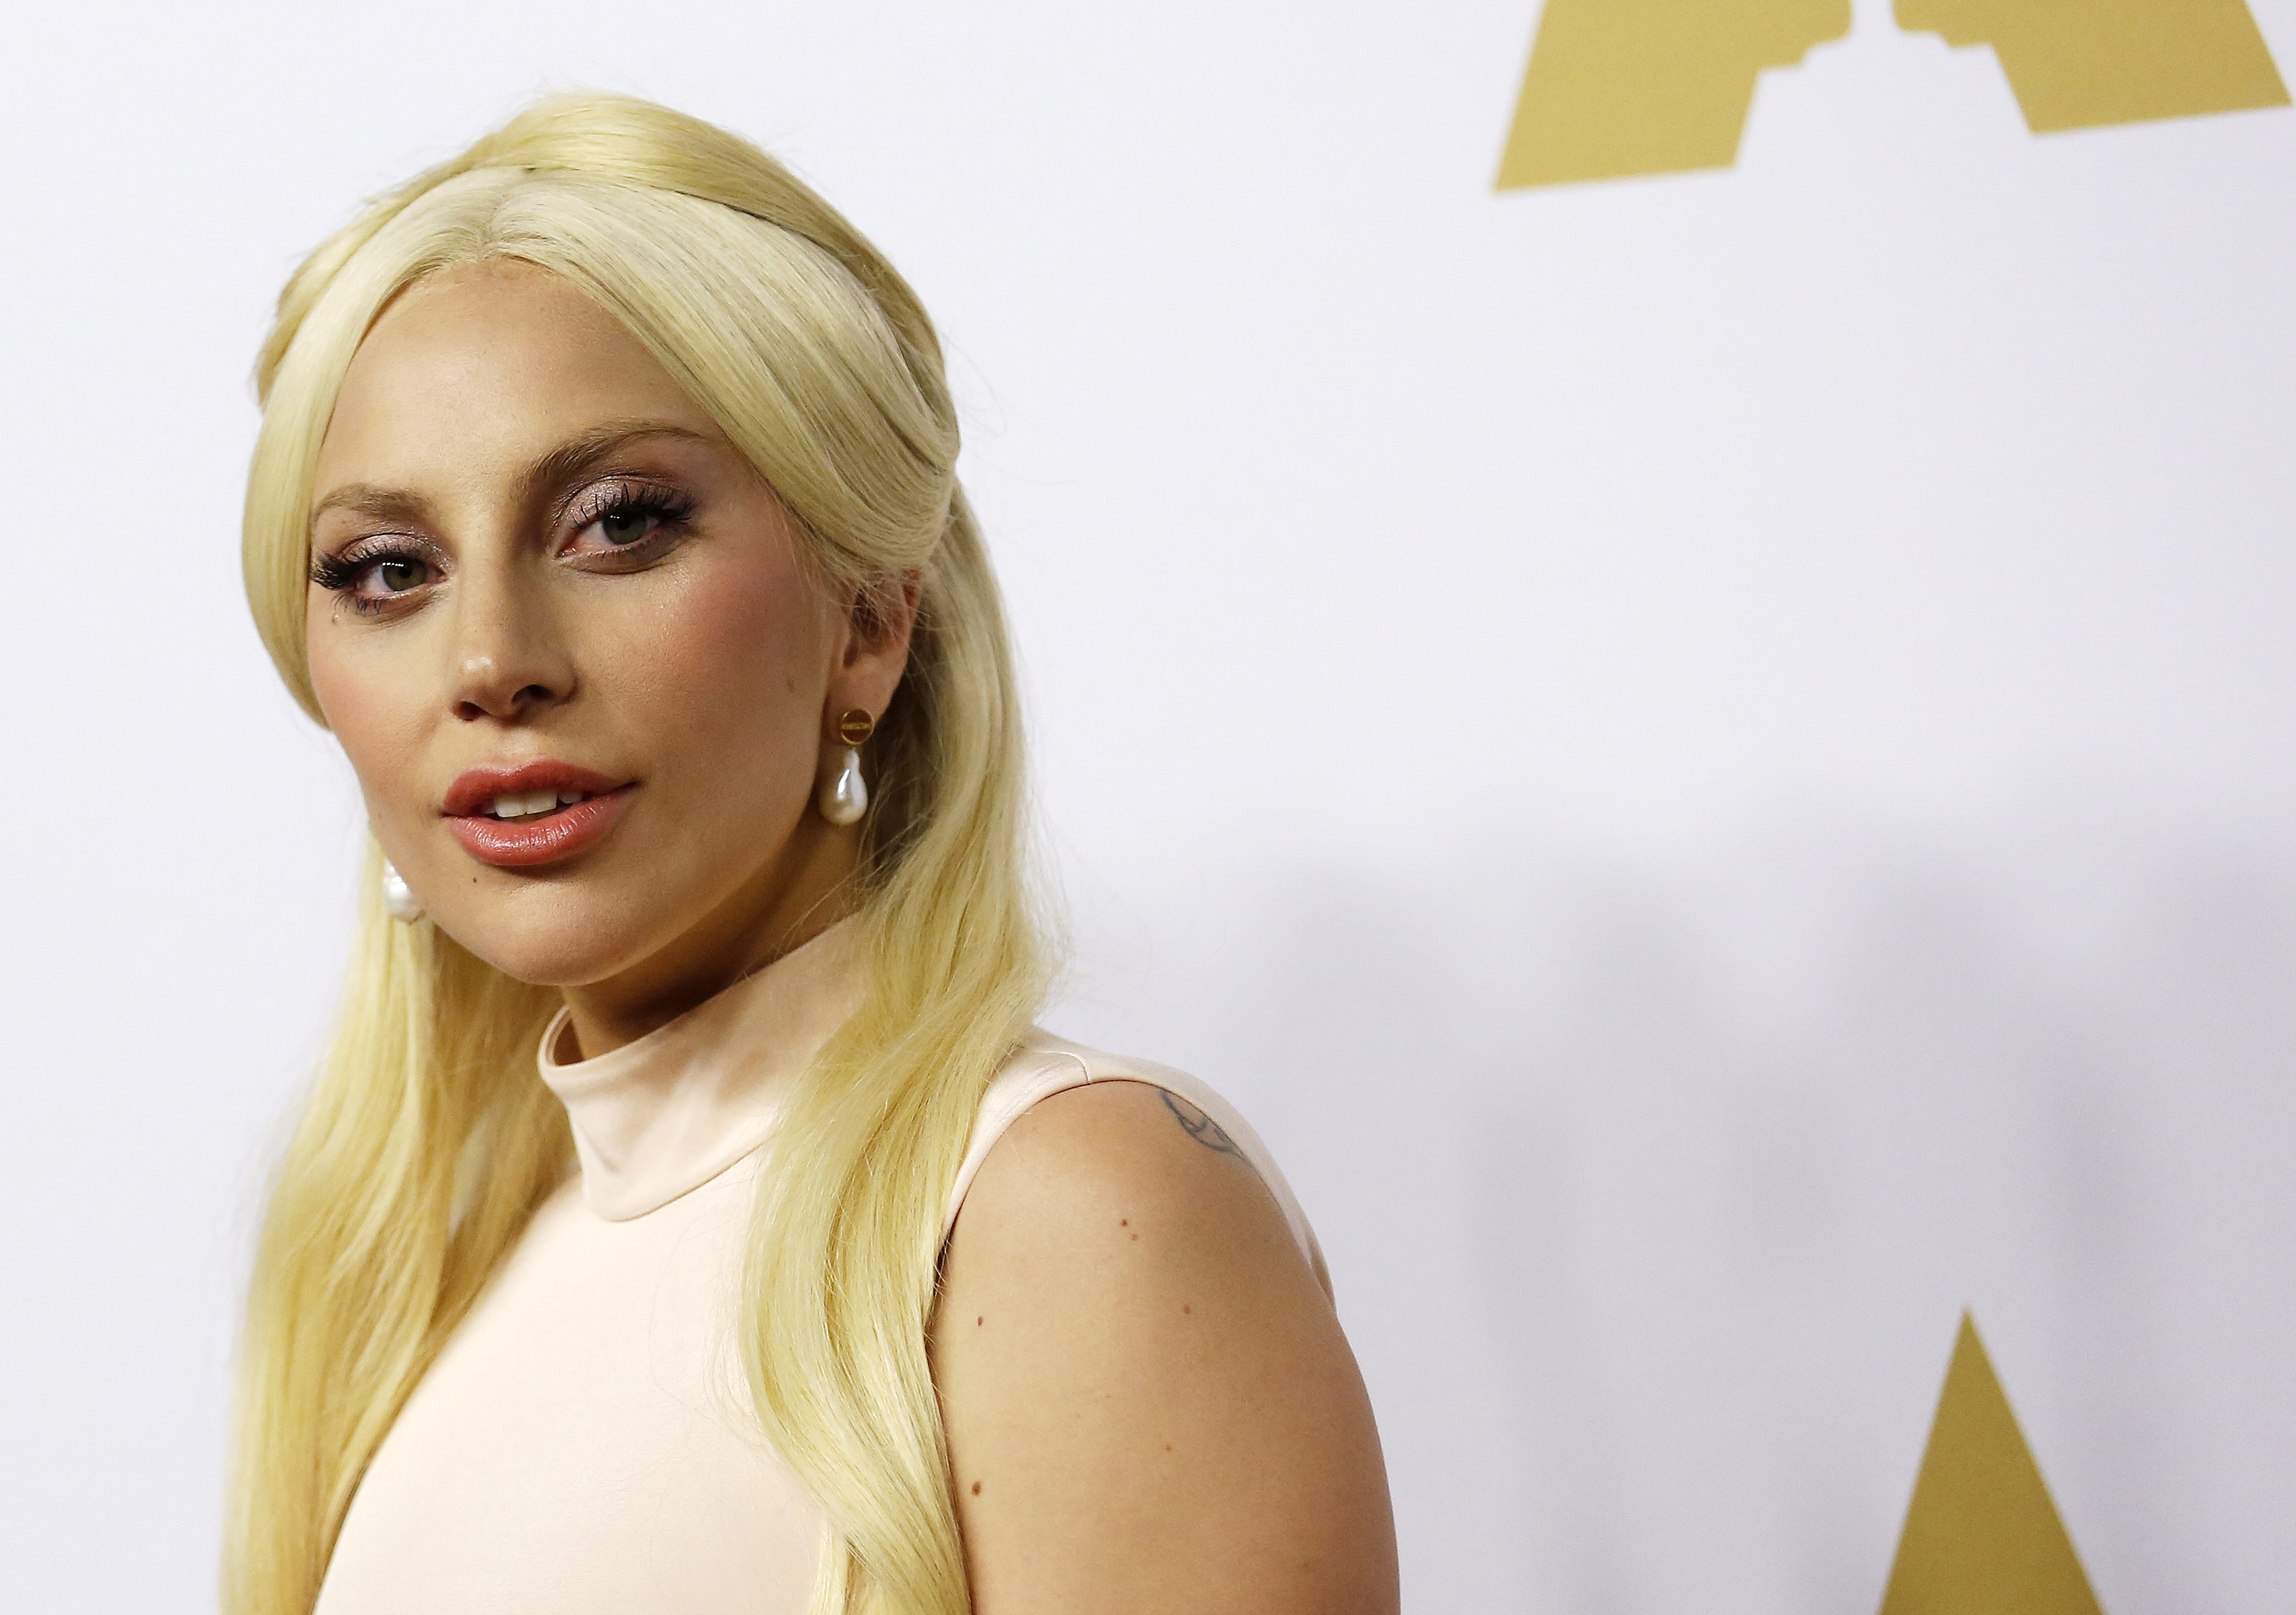 Lady Gaga Wallpapers Images Photos Pictures Backgrounds